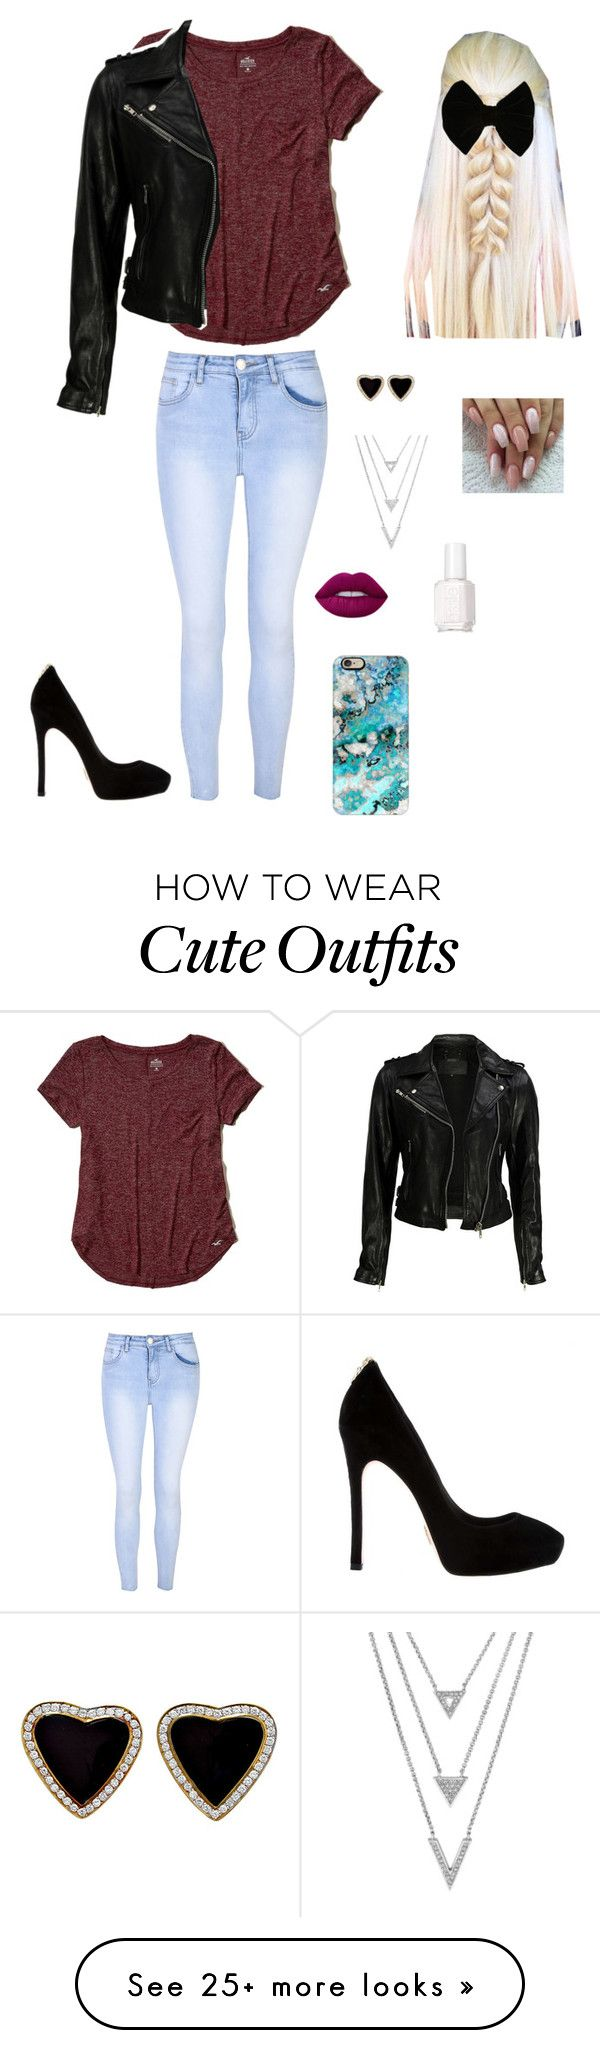 """""""Saturday outfit #2"""" by fluffy2016 on Polyvore featuring Casetify, Glamorous, Hollister Co., VIPARO, Essie, Forever 21 and Lime Crime"""